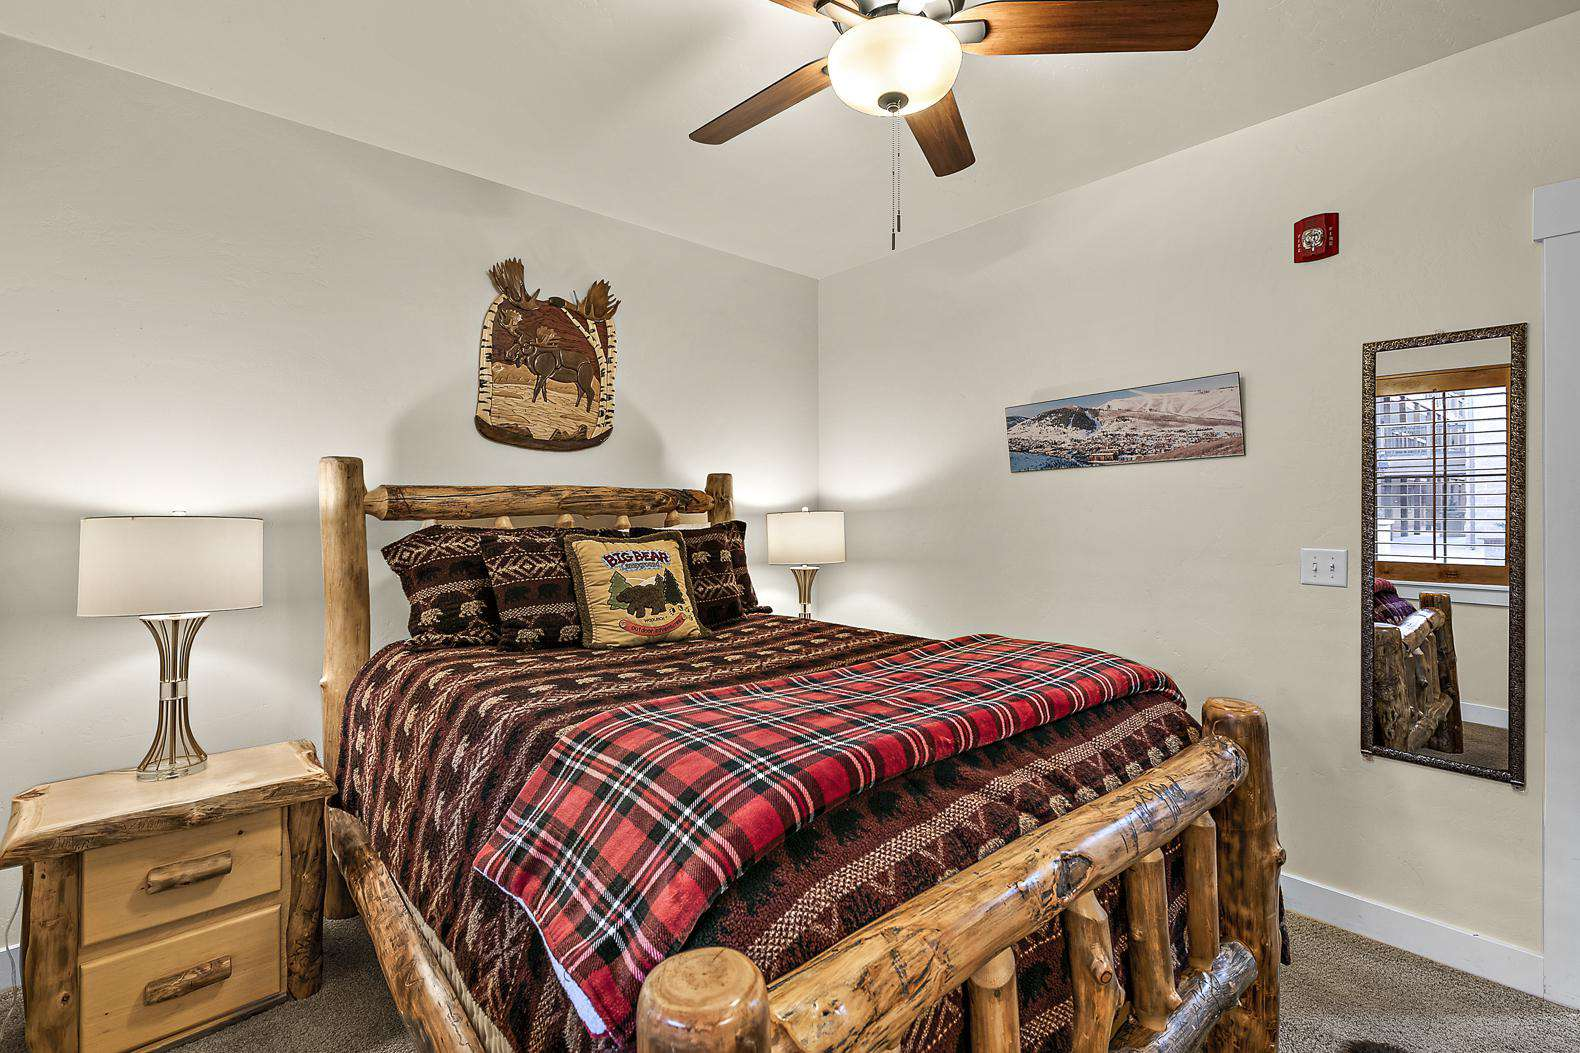 Guest bedroom with bear décor